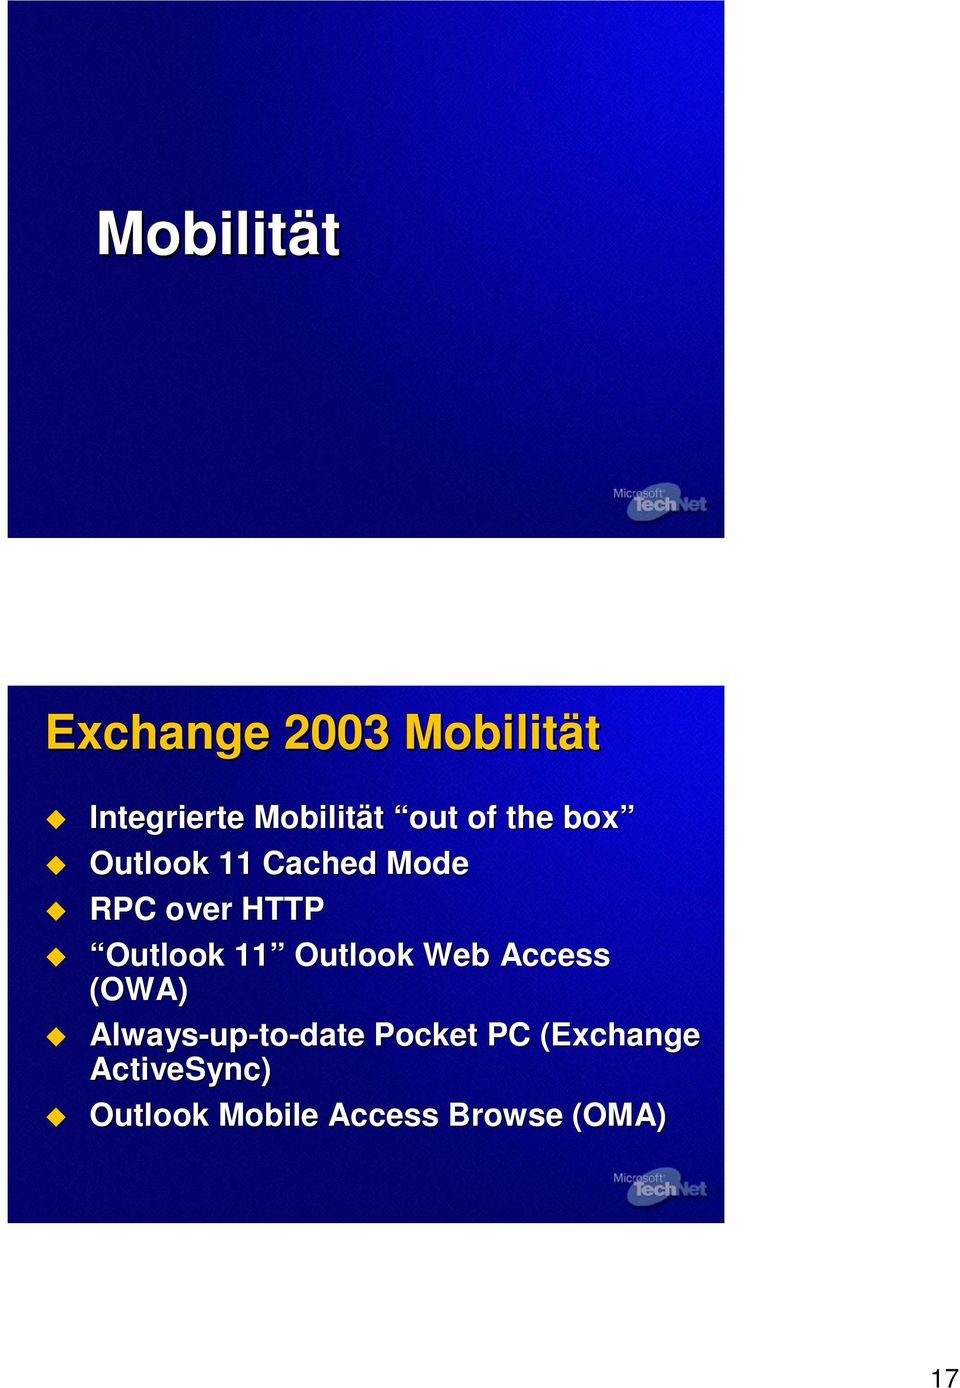 Outlook 11 Outlook Web Access (OWA) Always-up up-to-date